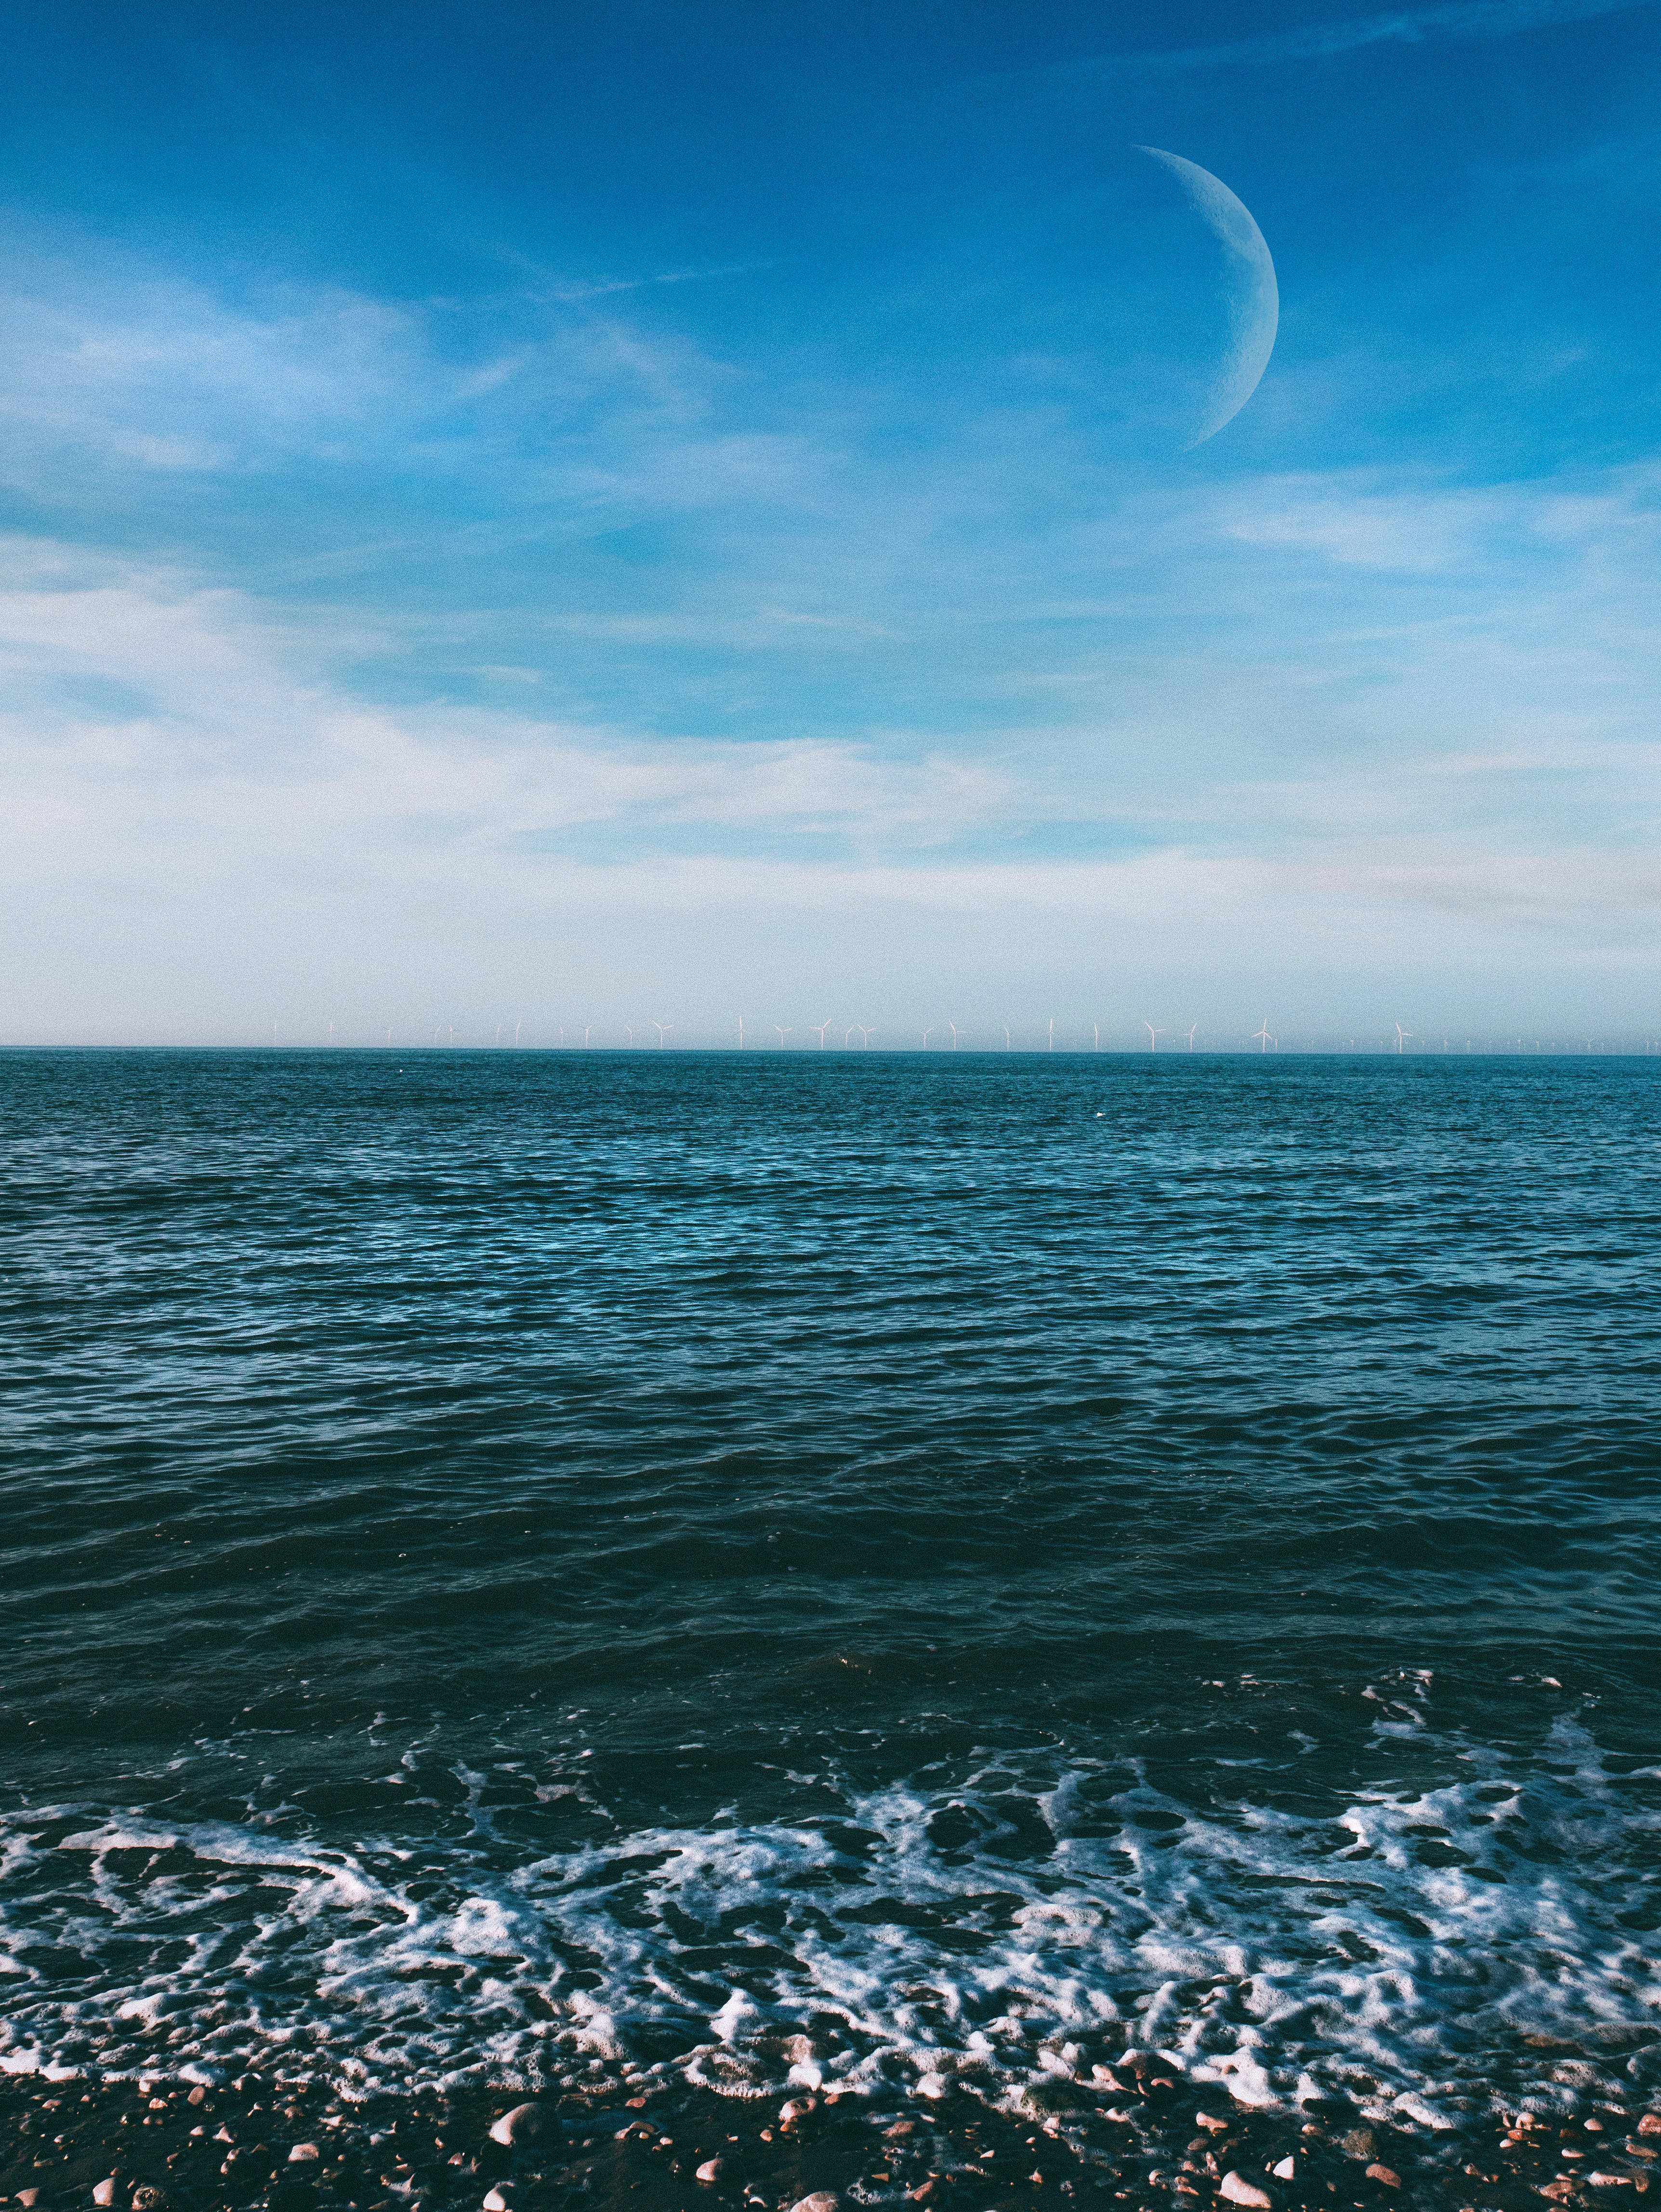 Calm Body of Water Under Blue Sky